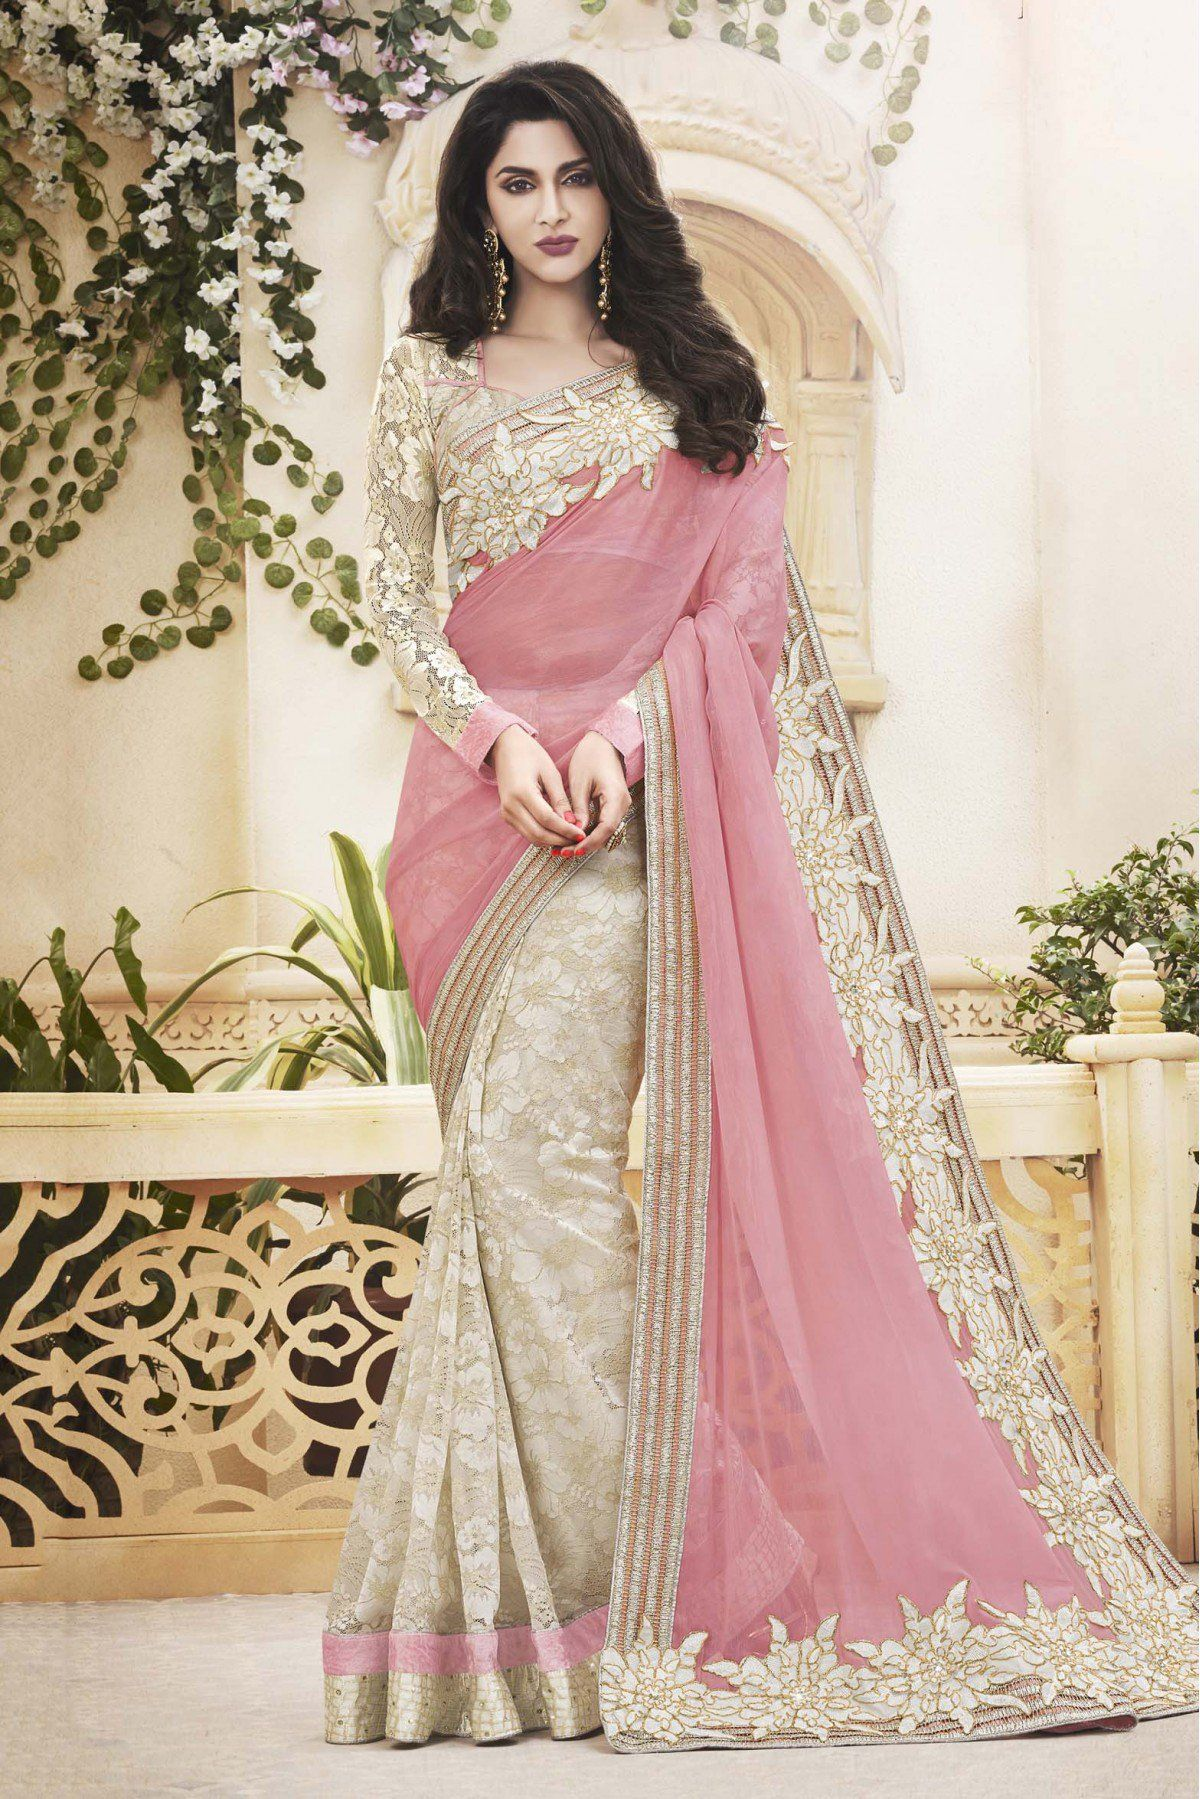 20c2b559c3 Buy Net and Pure Chiffon Designer Saree In Off White and Pink Colour for  women @ ninecolours.com. Best Price Guaranteed!